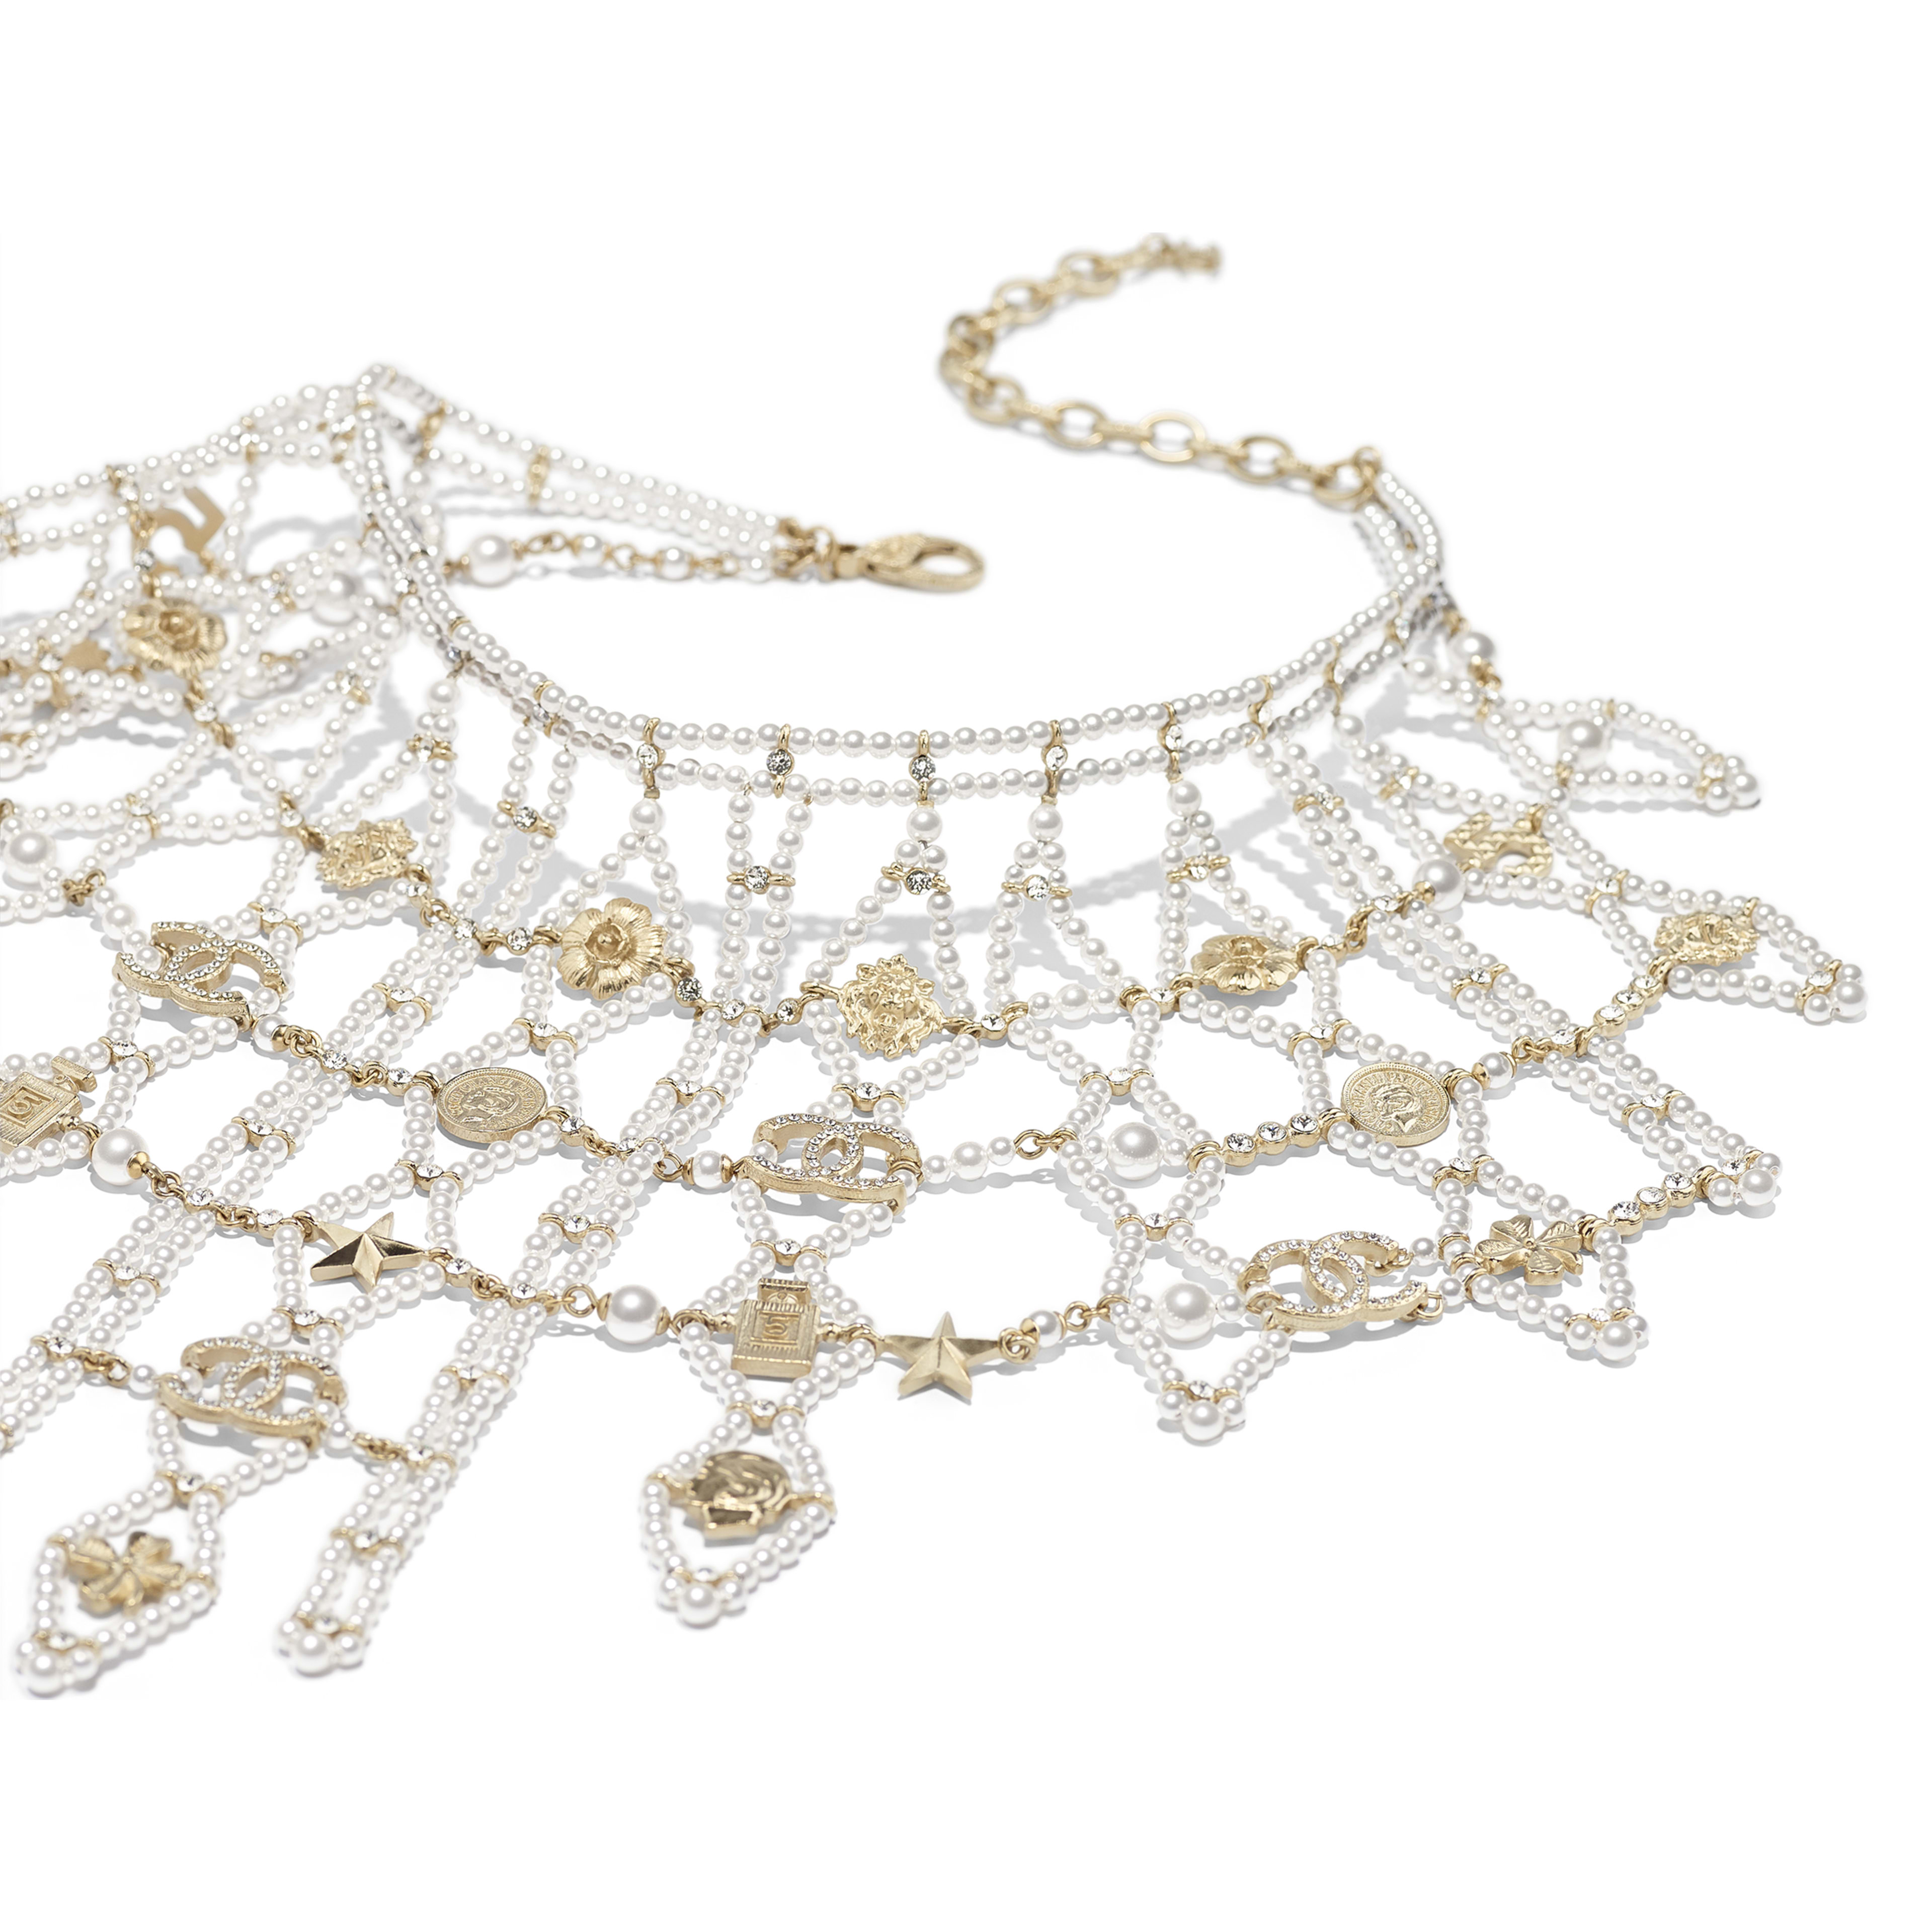 Necklace - Gold, Pearly White & Crystal - Metal, Glass Pearls & Diamantés - Alternative view - see full sized version